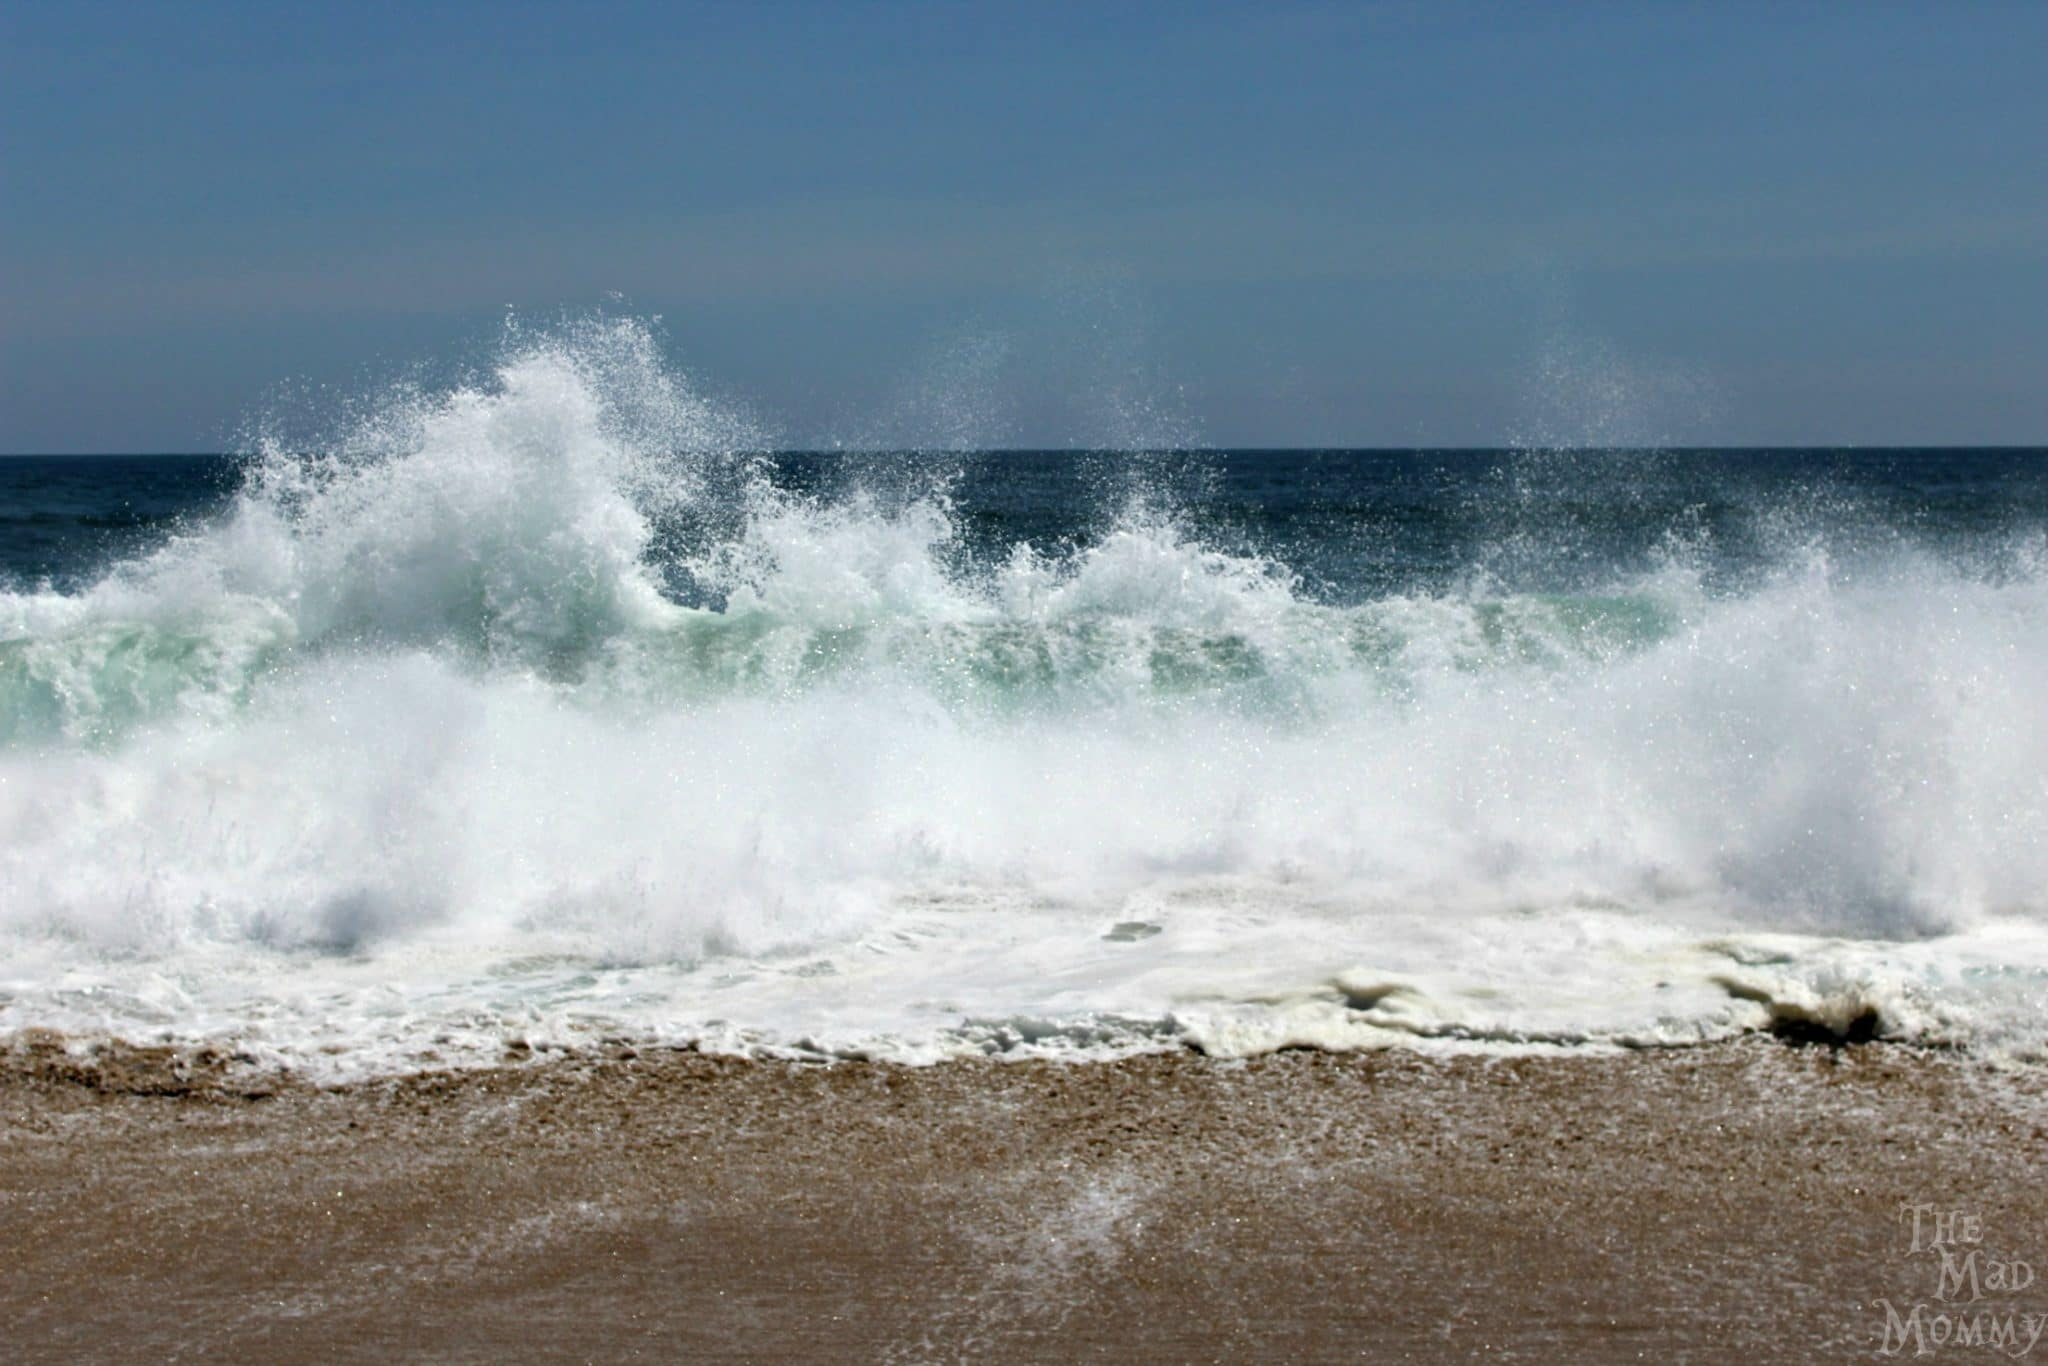 The waves seem to be alive with energy when they crash onto Newport Beach.